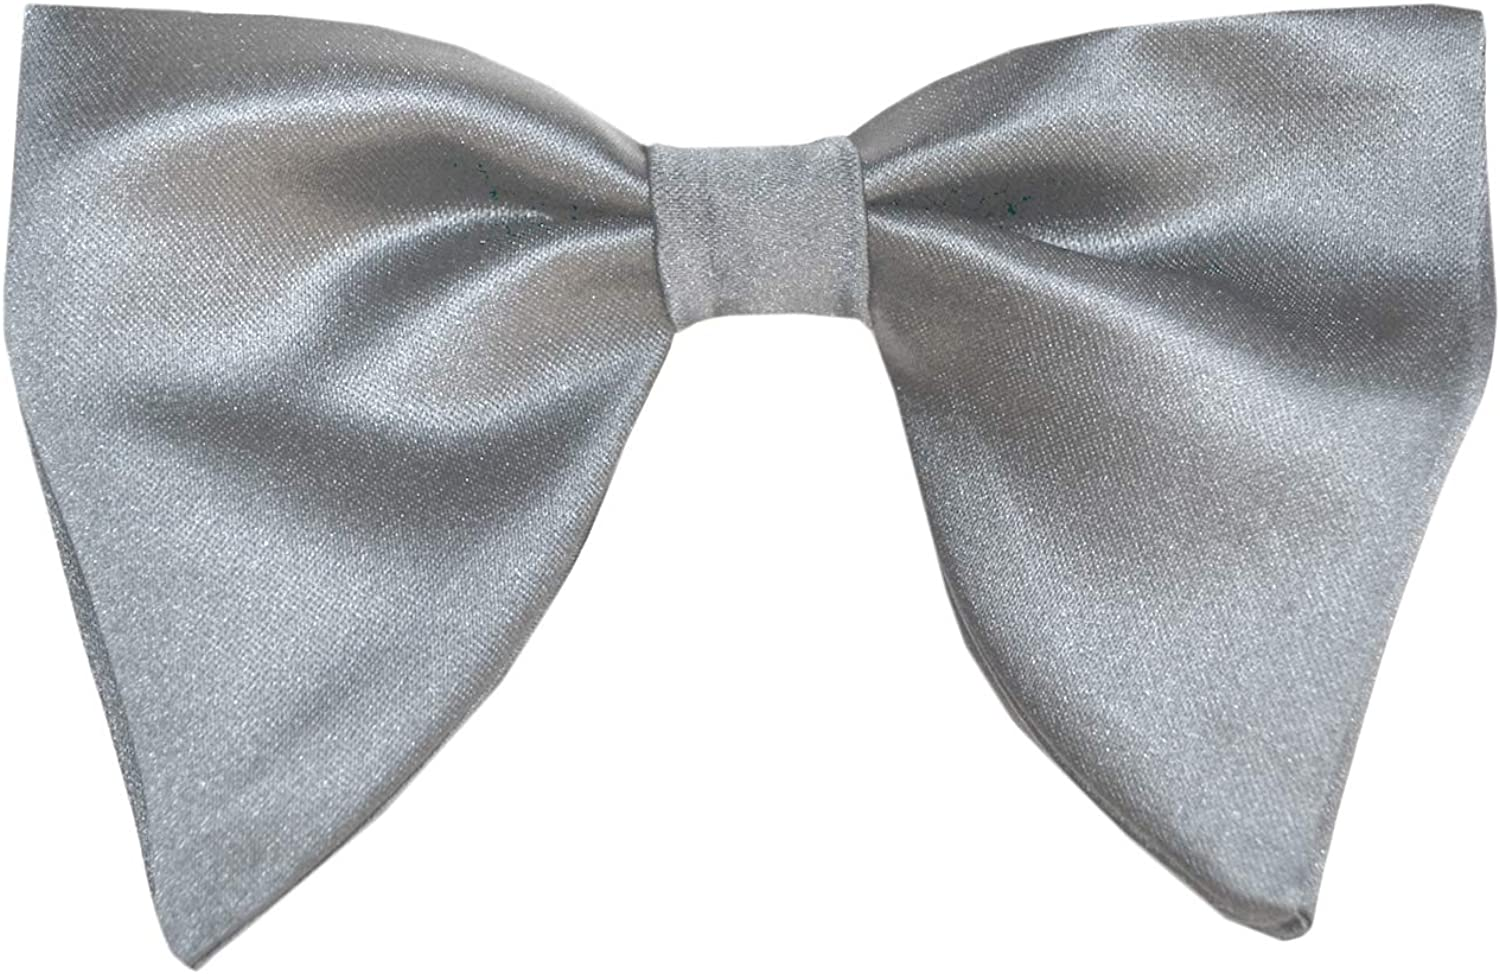 Remo Sartori Made in Italy Men's Butterfly Oversize Pre-Tied Bow Tie for Tuxedo, Adjustable, Silk